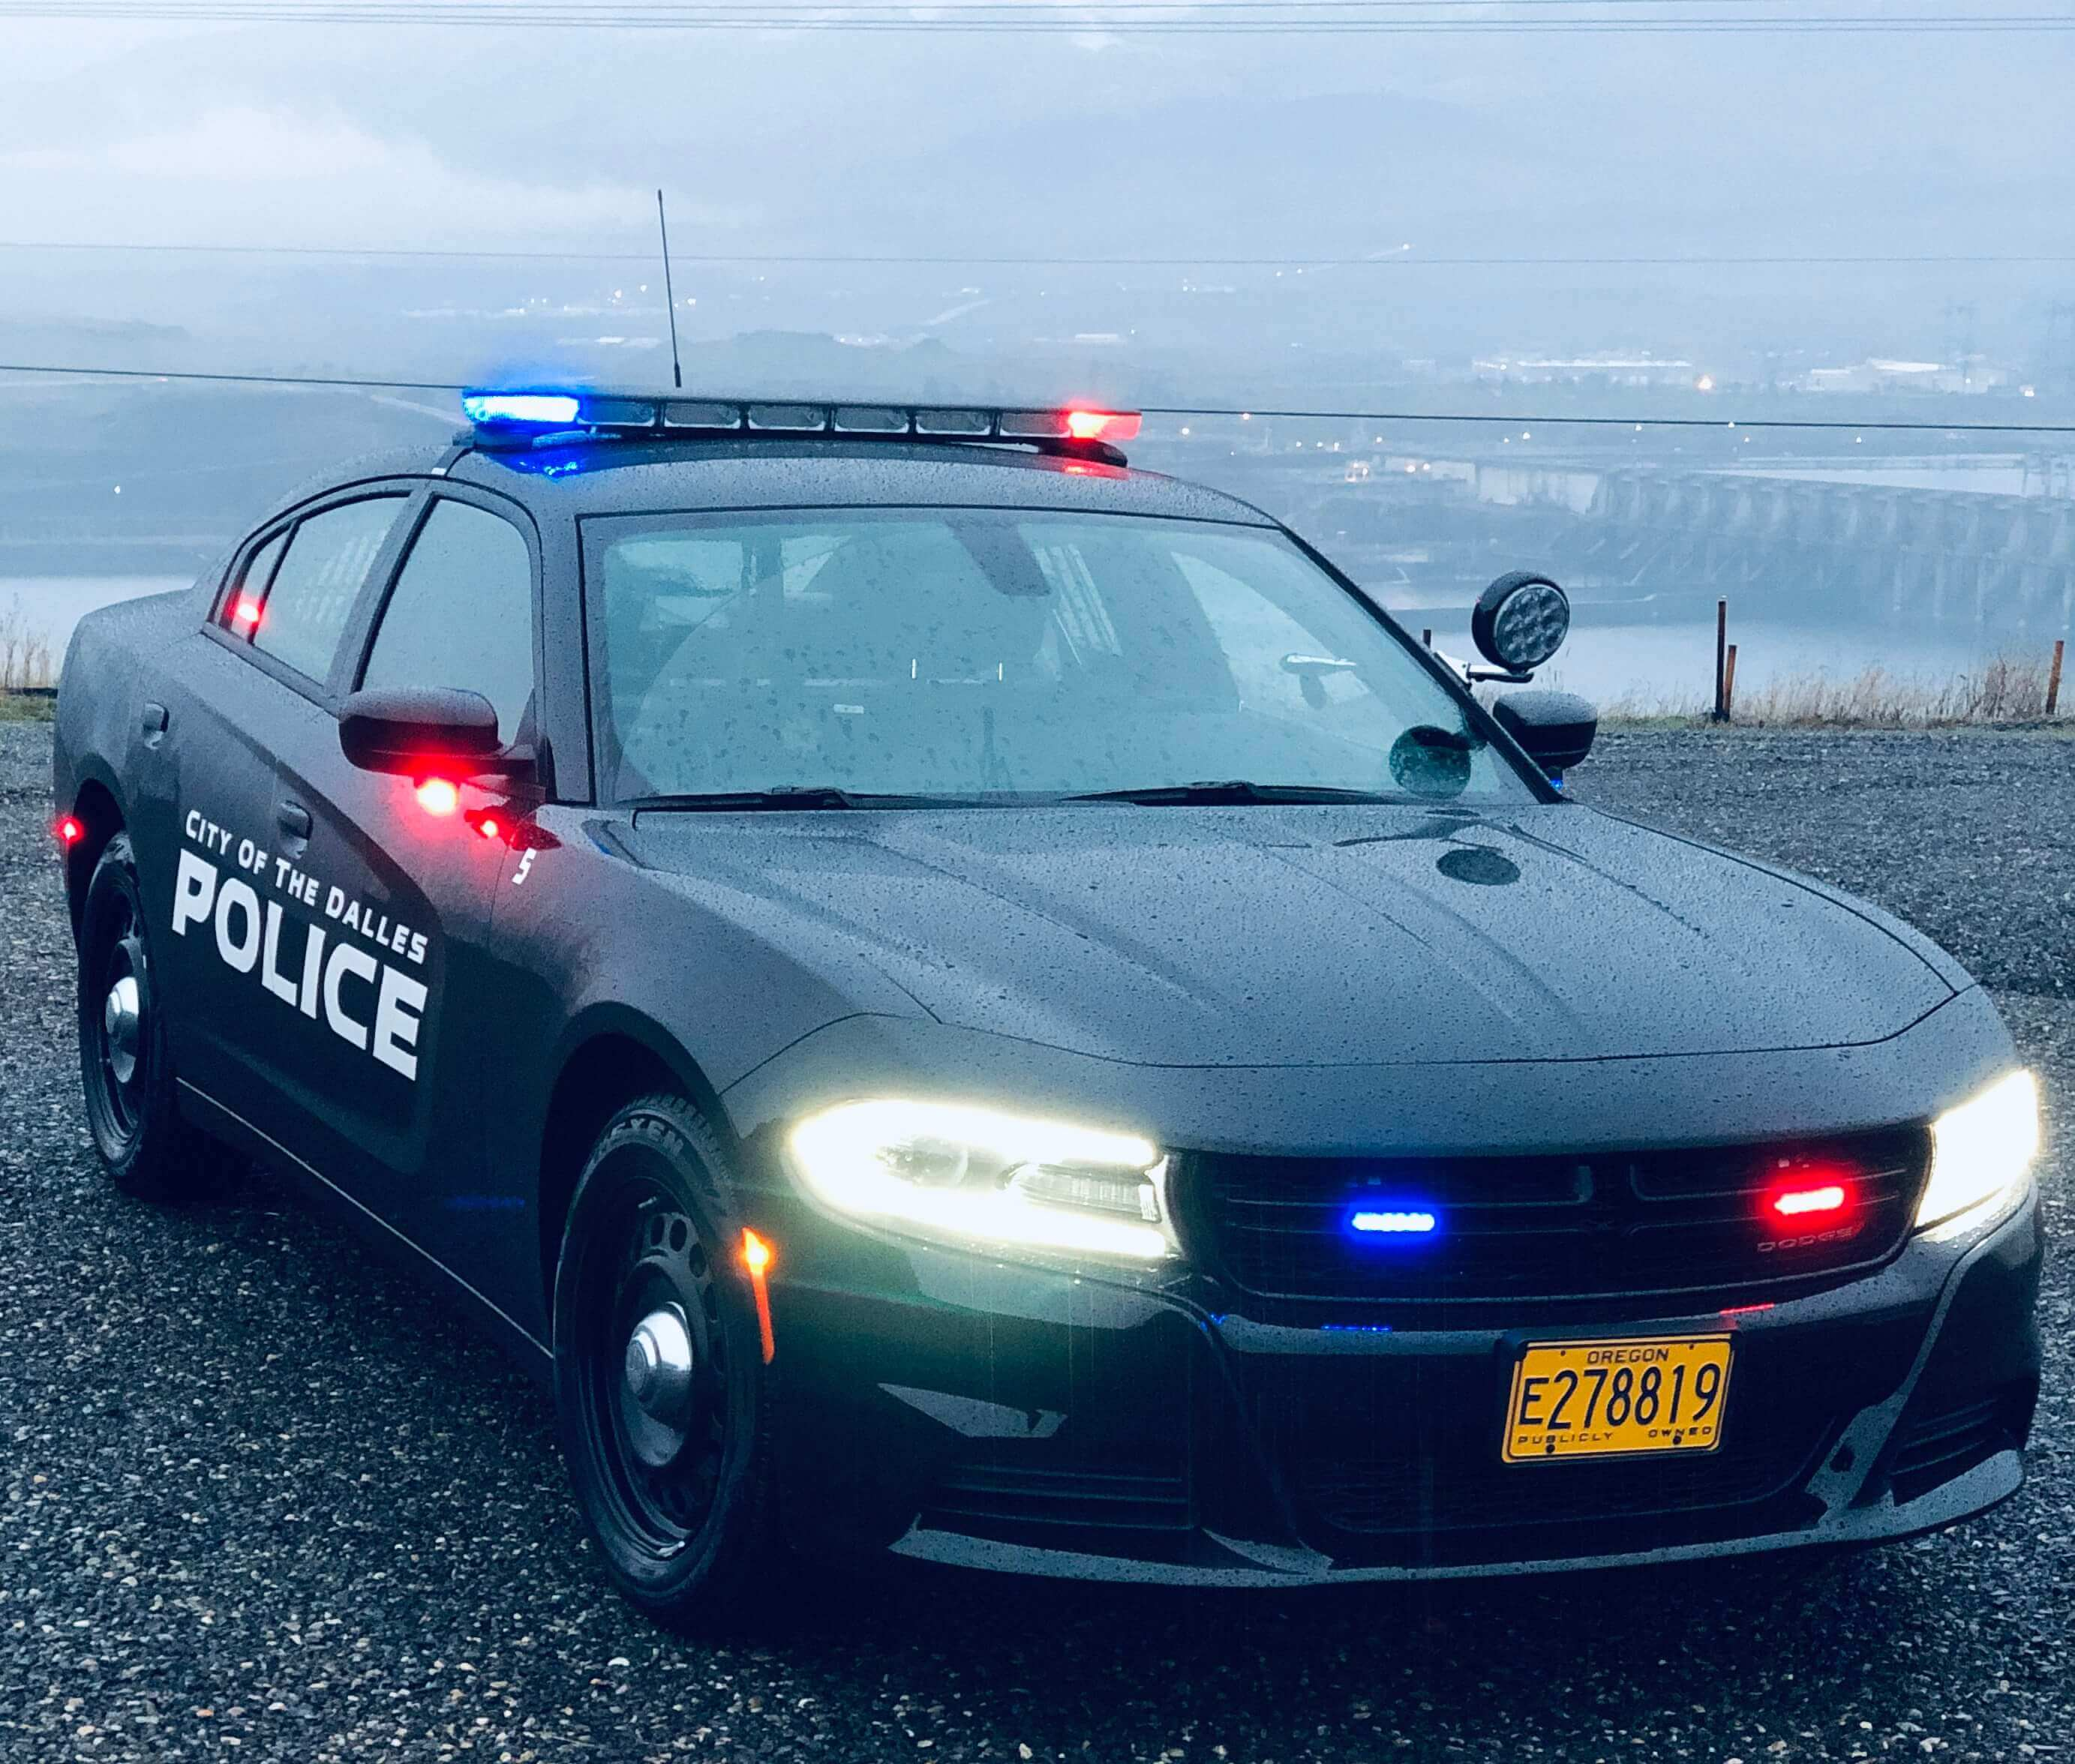 The Dalles PD 2018